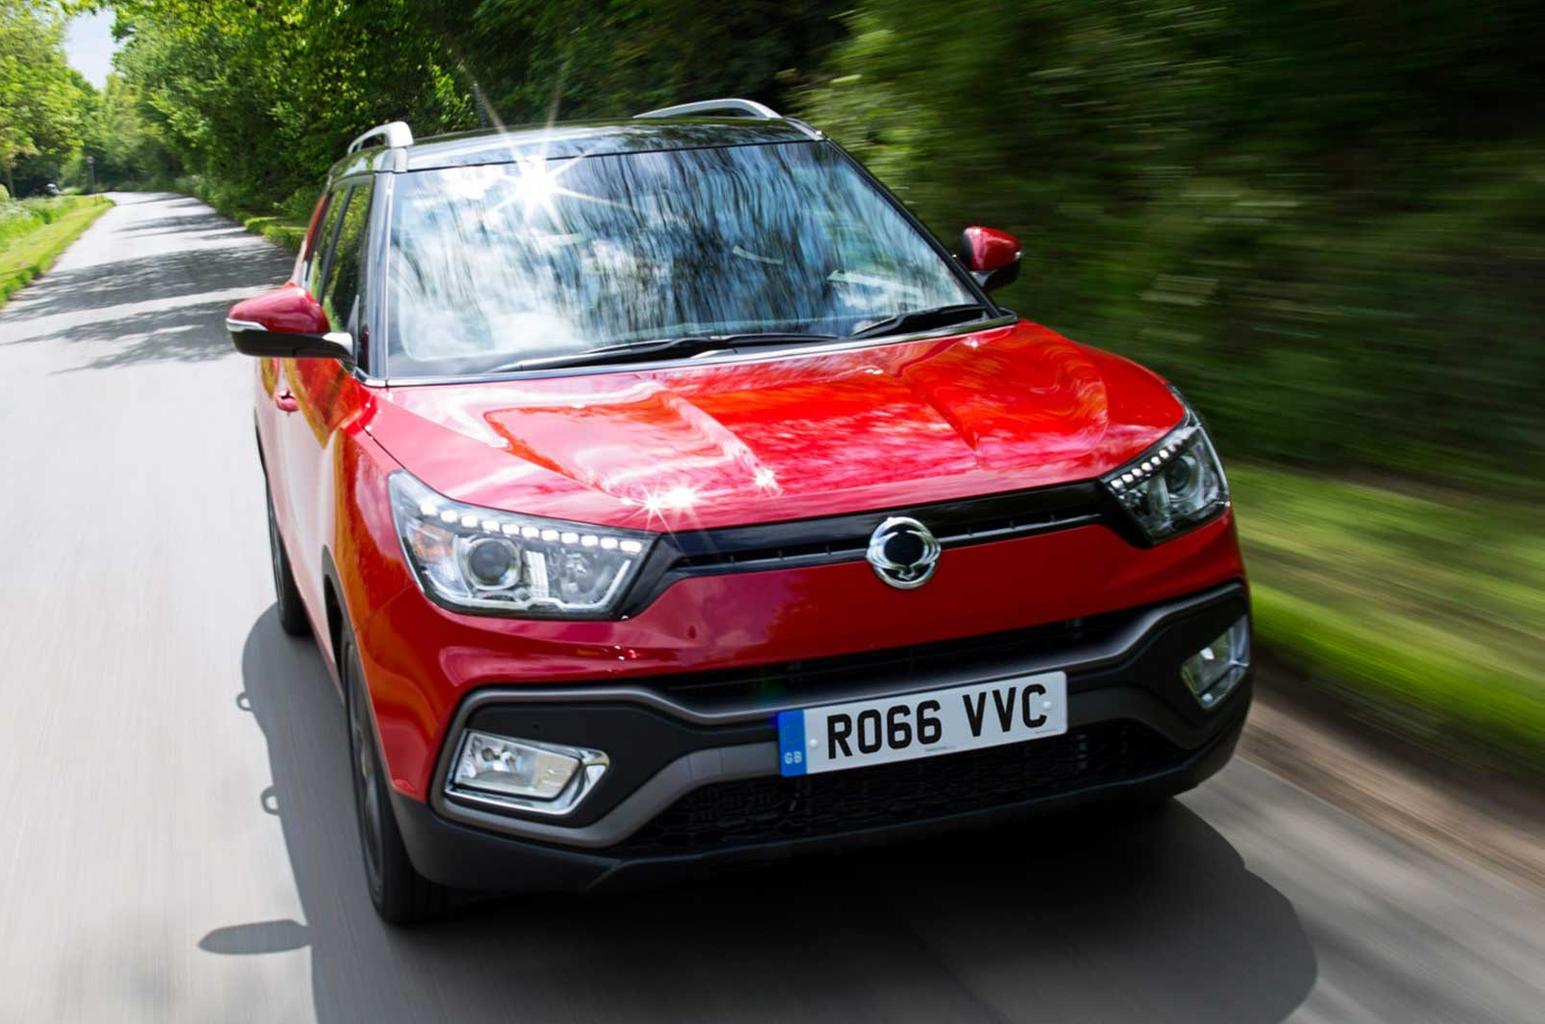 New SsangYong Tivoli XLV on sale for £18,250